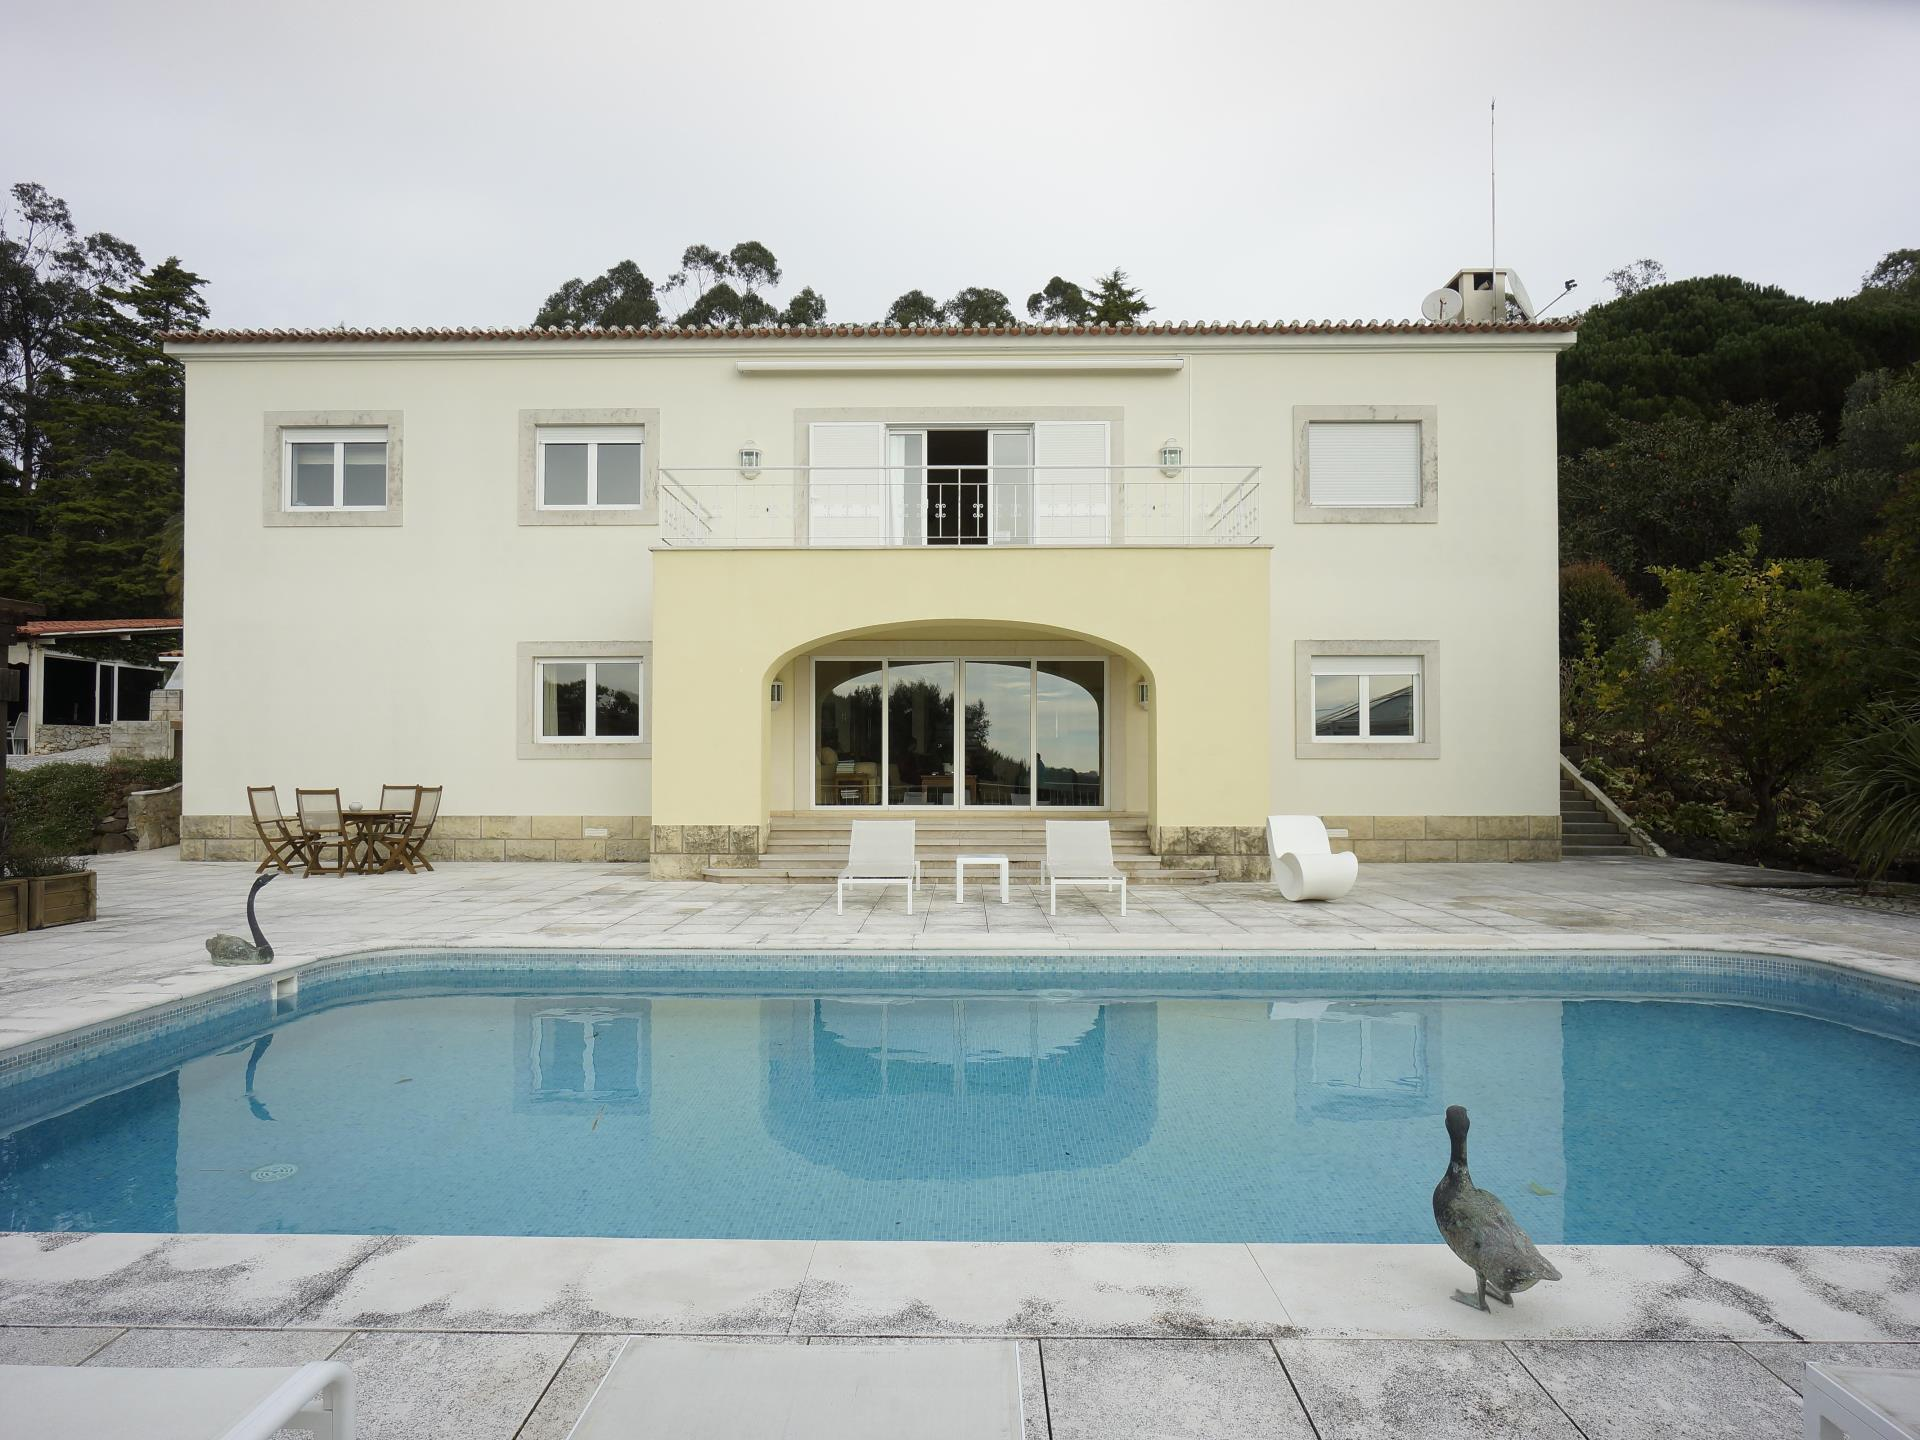 Casa Unifamiliar por un Venta en House, 5 bedrooms, for Sale Sintra, Lisboa Portugal